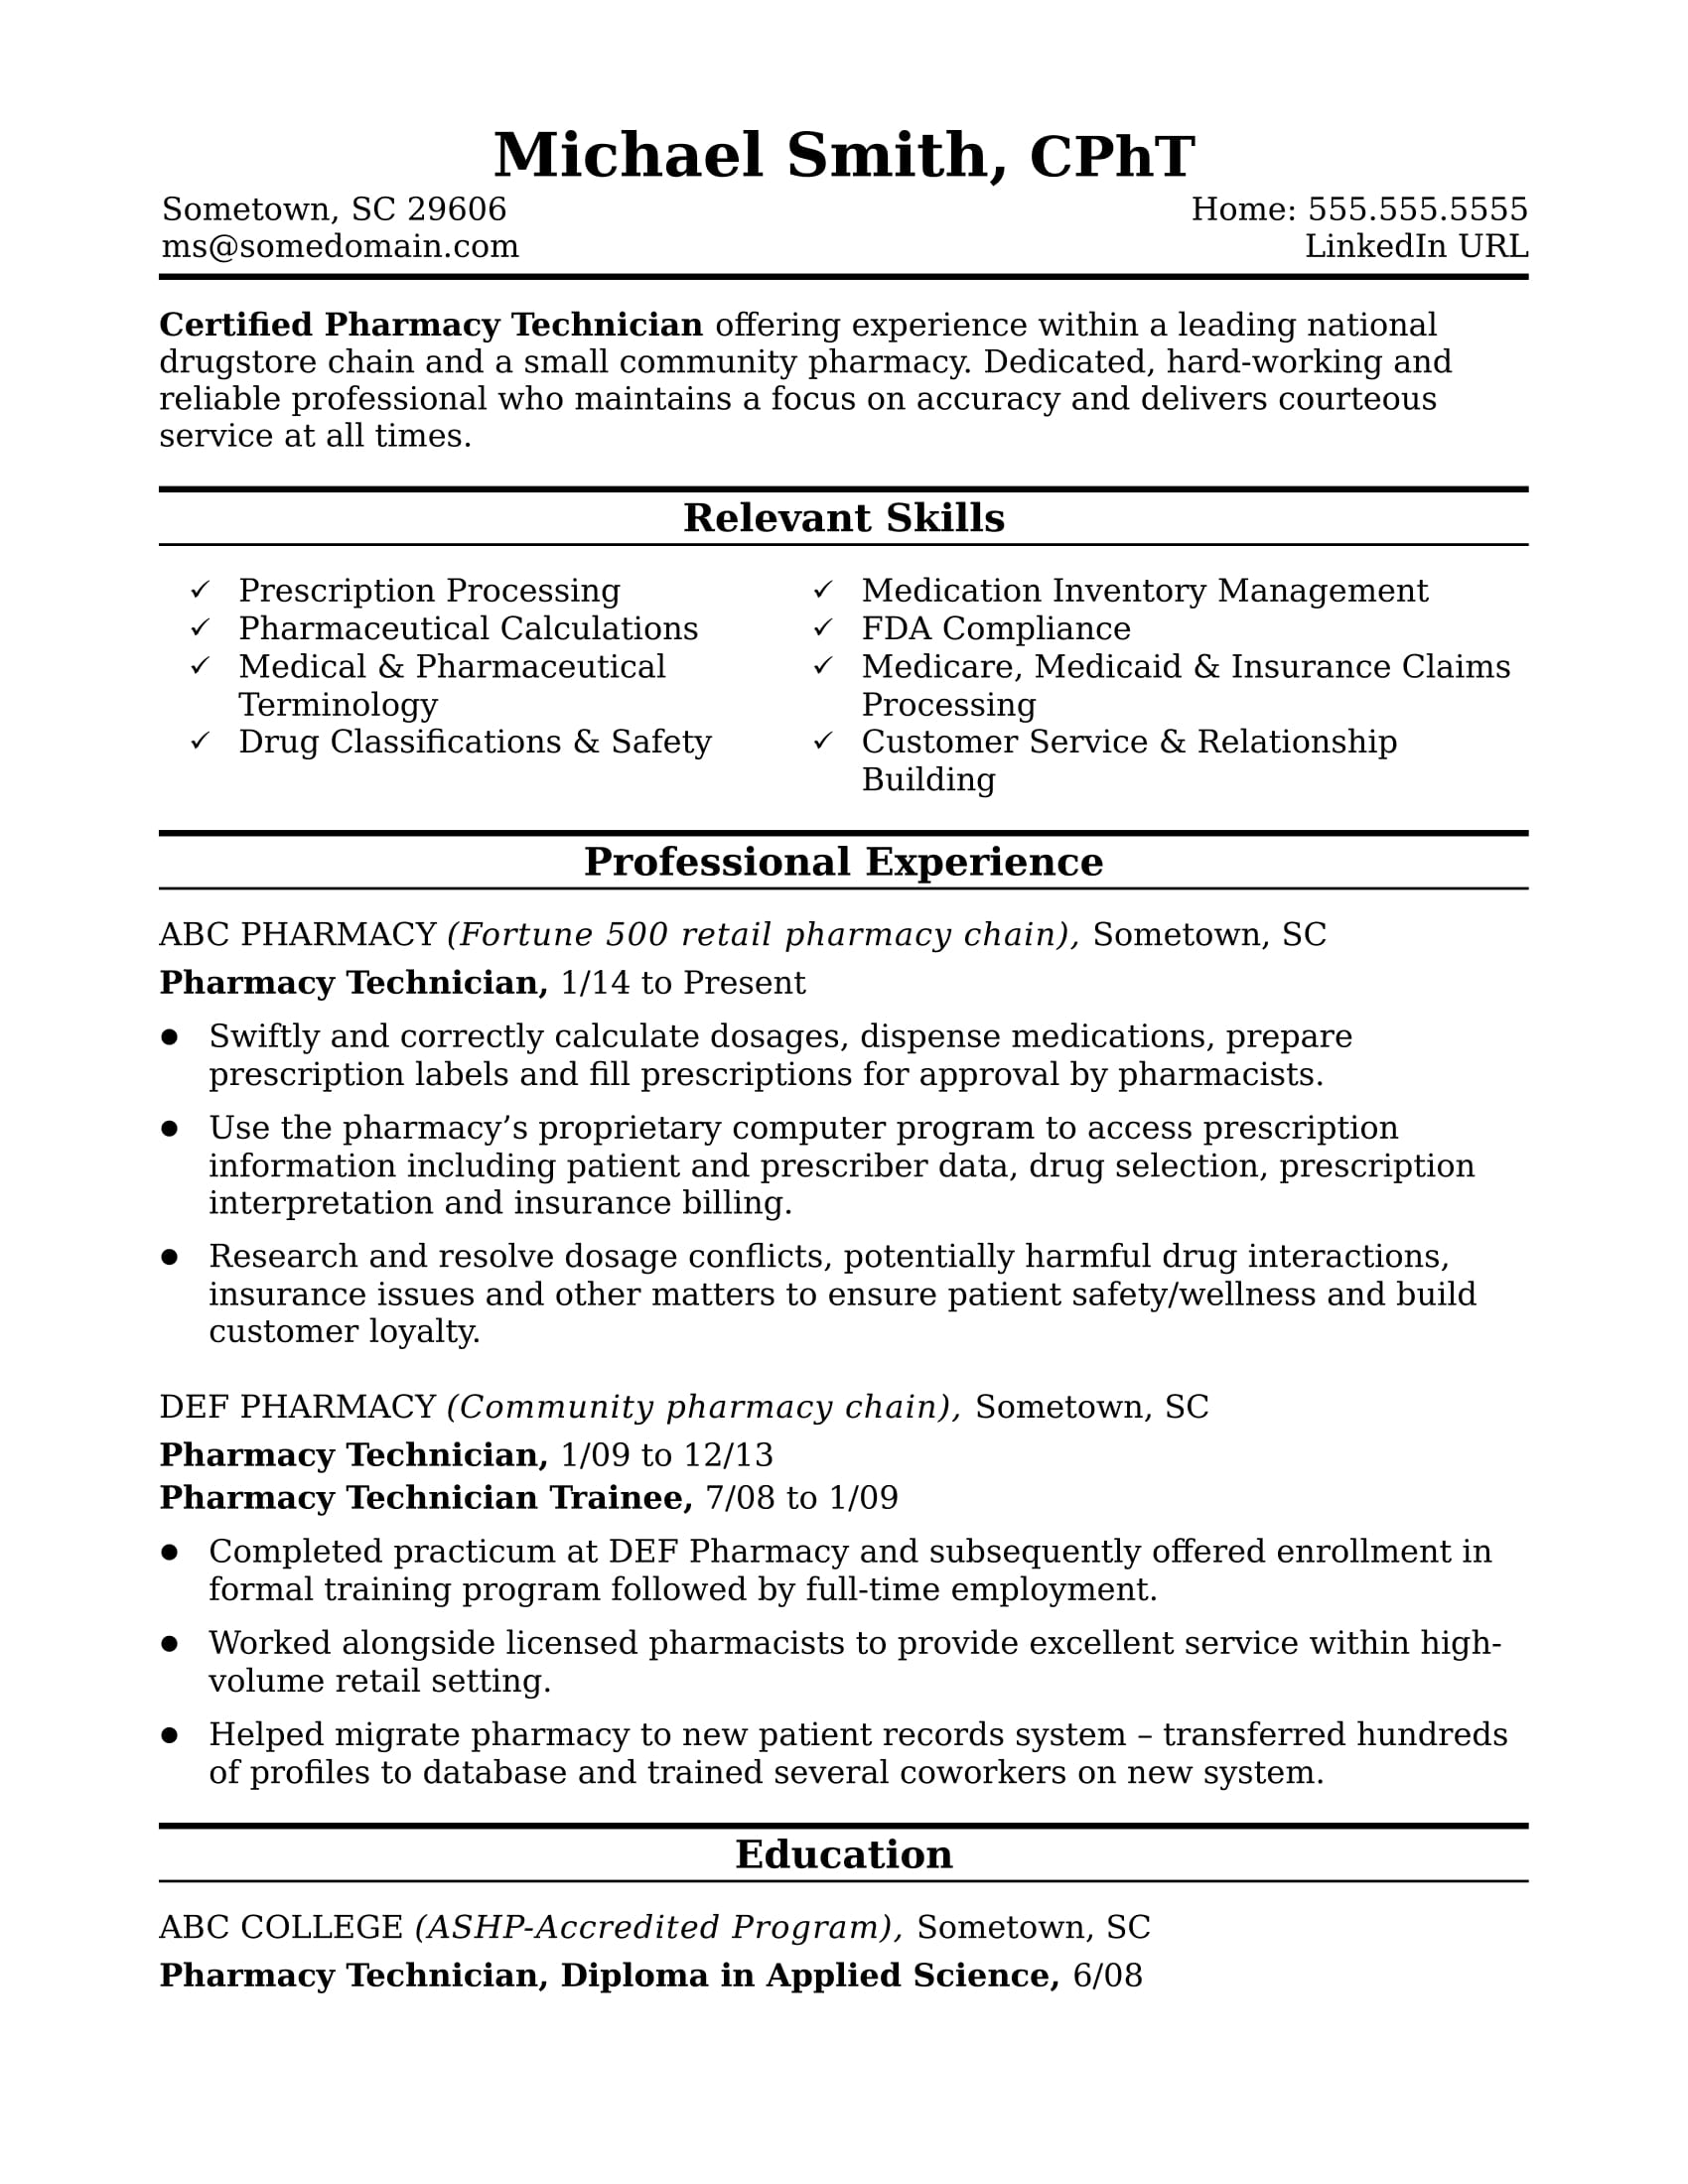 Beau Sample Resume For A Pharmacy Technician